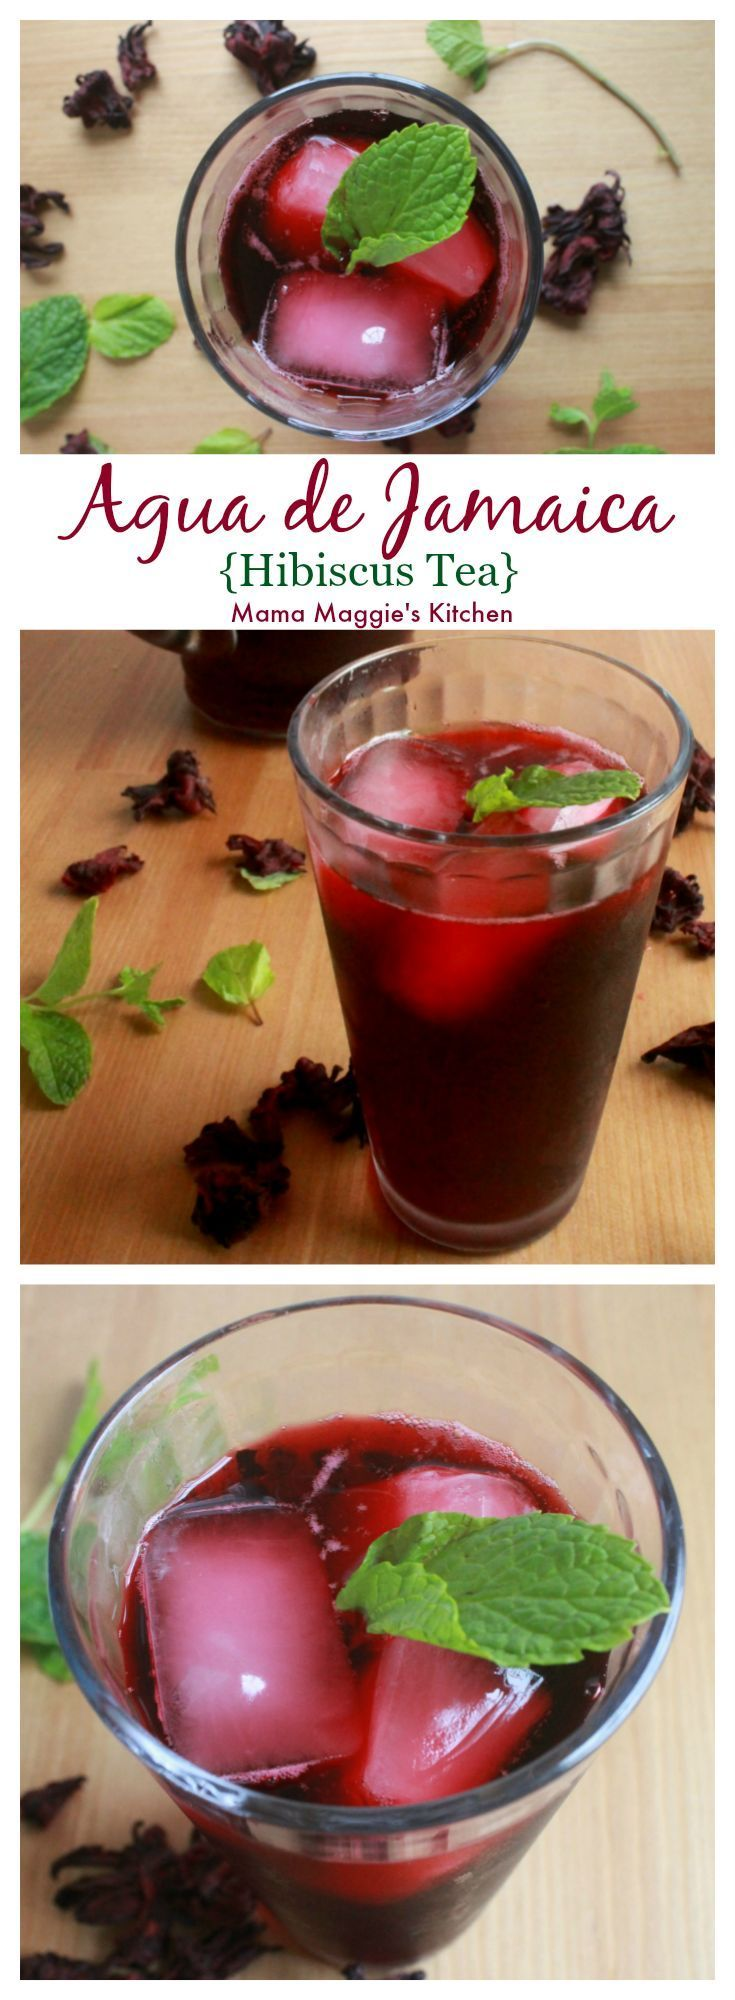 17 best images about aguas frescas on pinterest pictures for Cocktail hibiscus